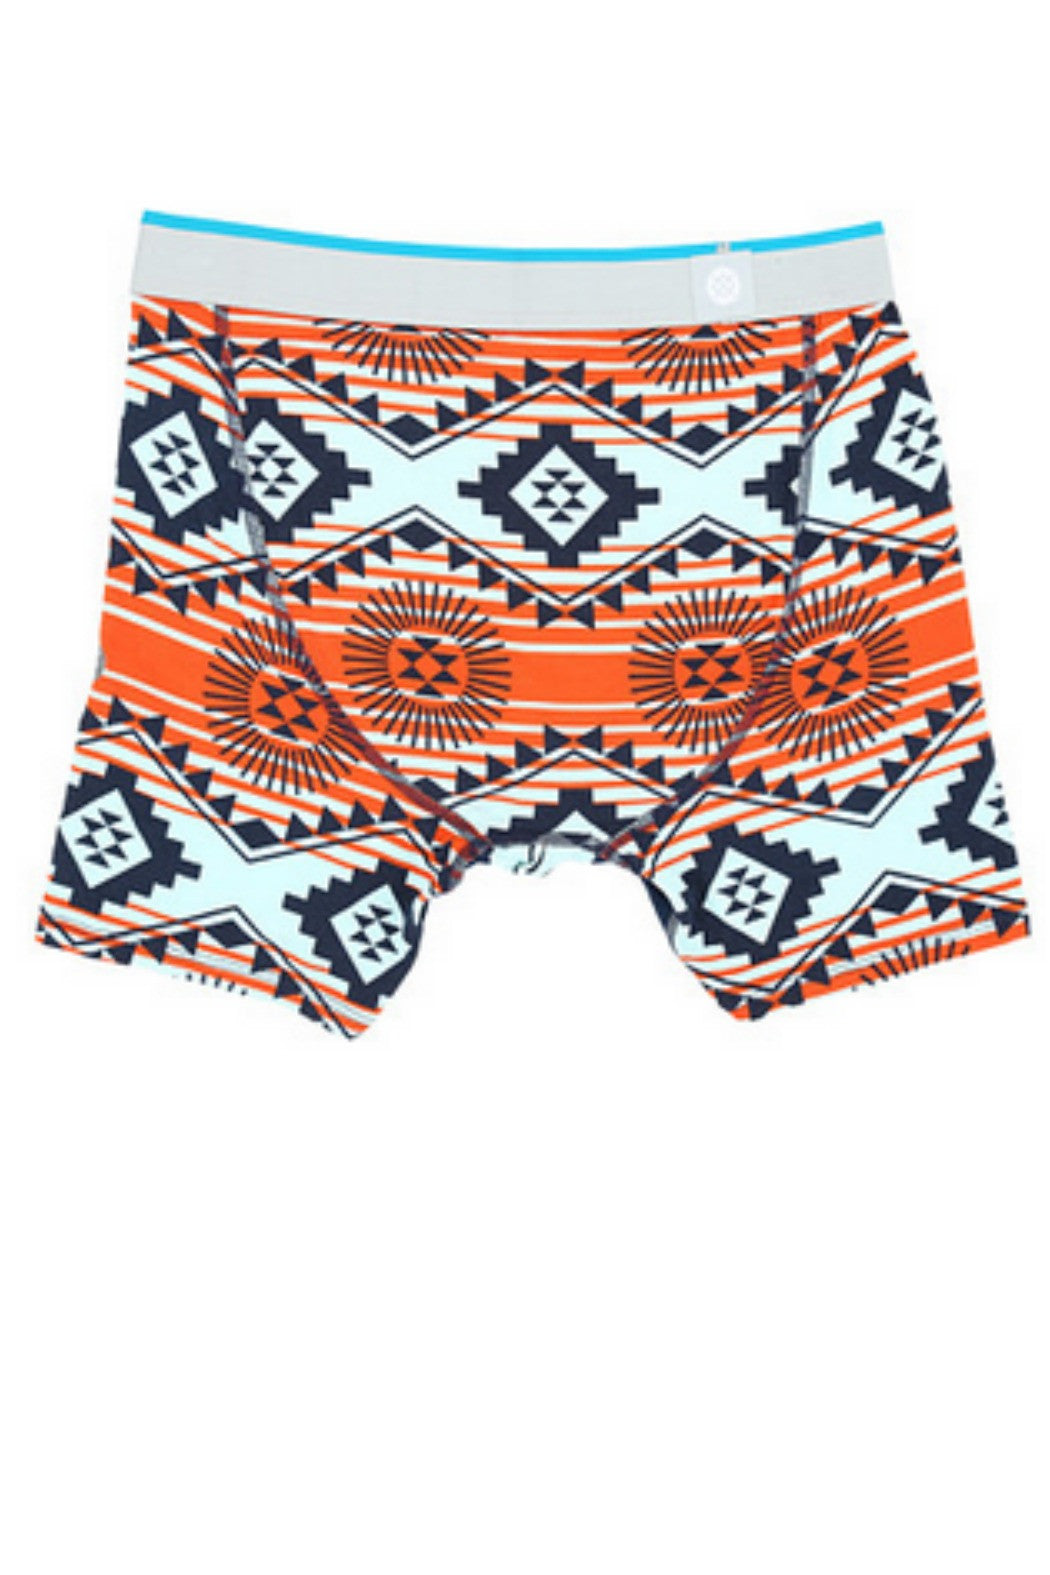 Stance- Sunburst Underwear in Red - R+D Hipster Emporium | Womens & Mens Clothing - 2